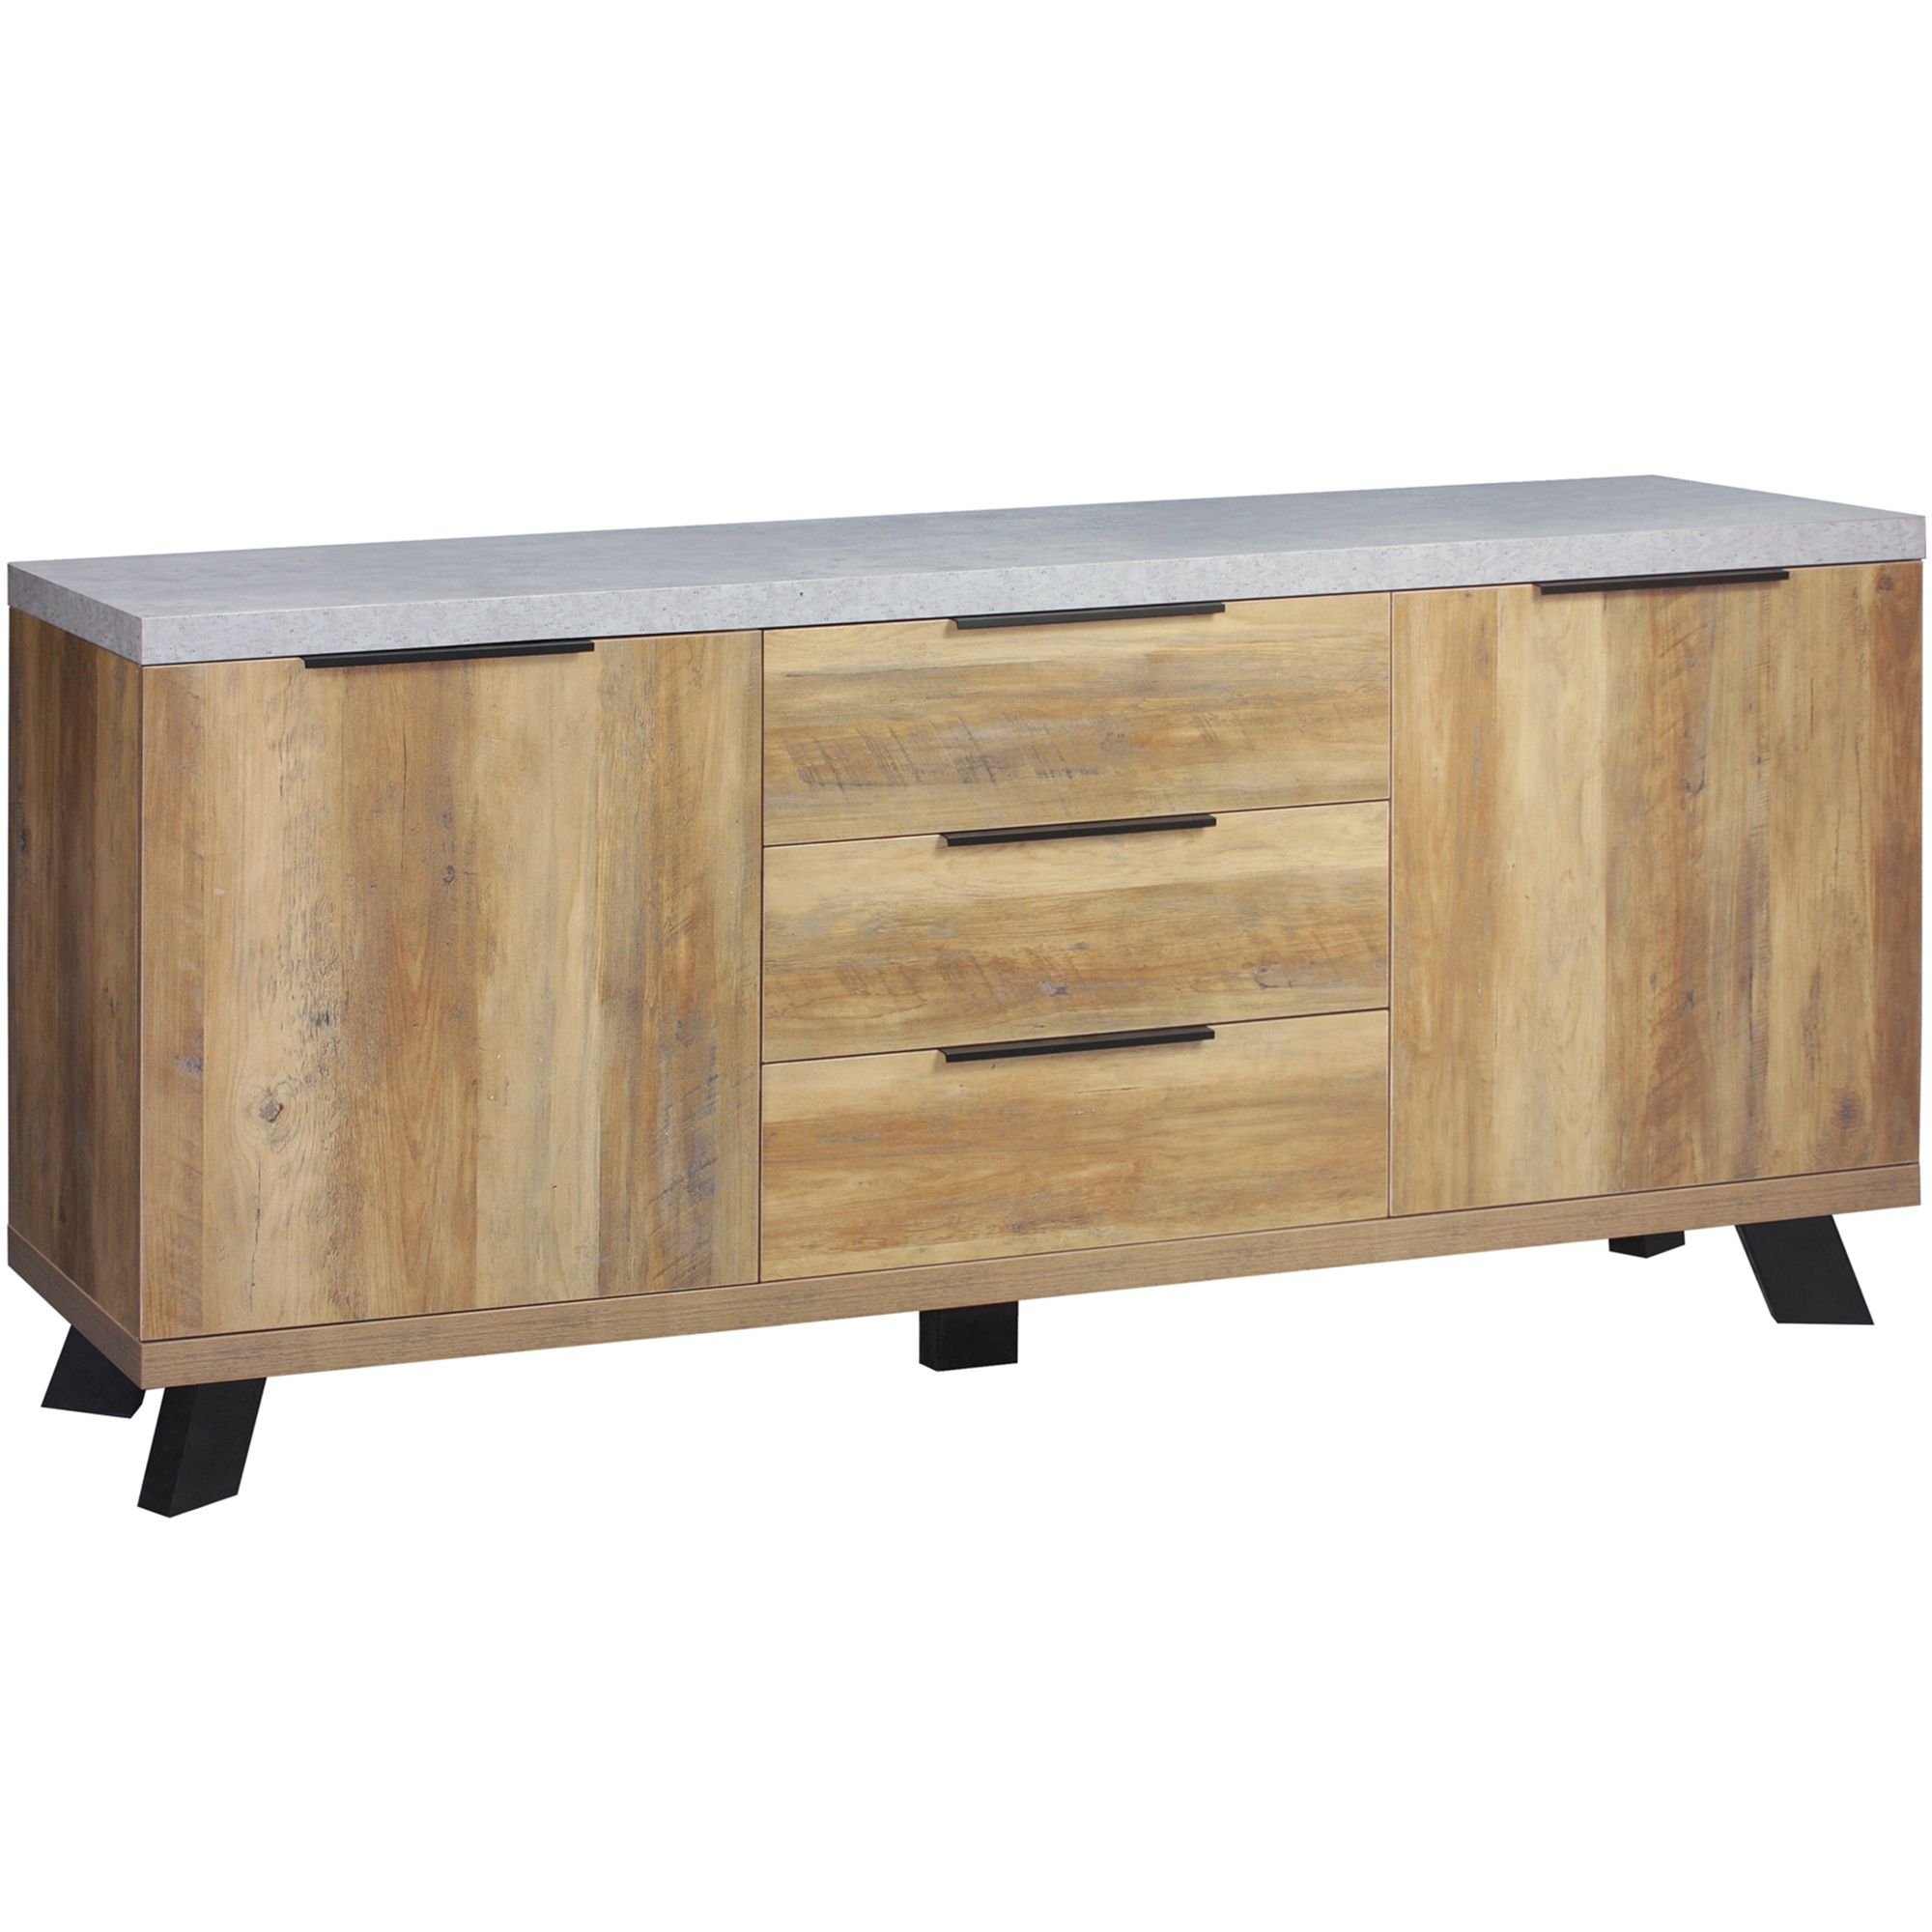 Sideboards & Buffets | Temple & Webster Inside Contemporary Distressed Grey Buffets (View 26 of 30)